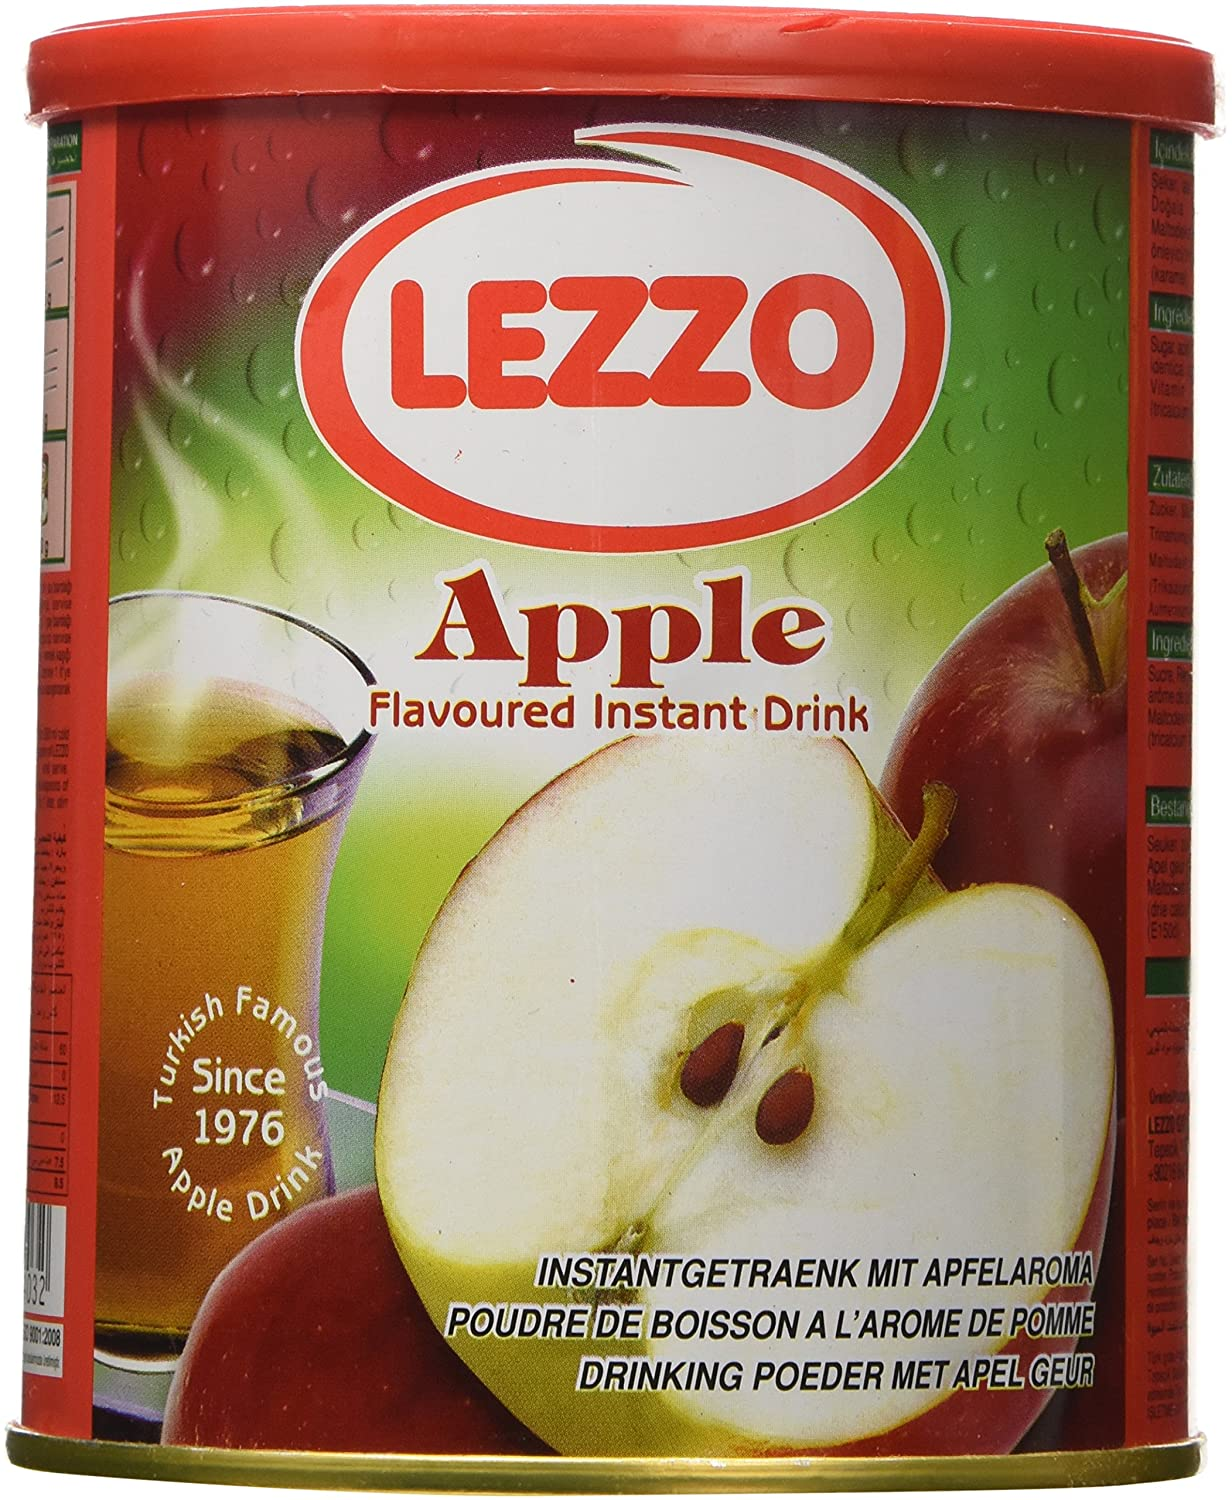 Lezzo Apple Flavoured Instant Drink